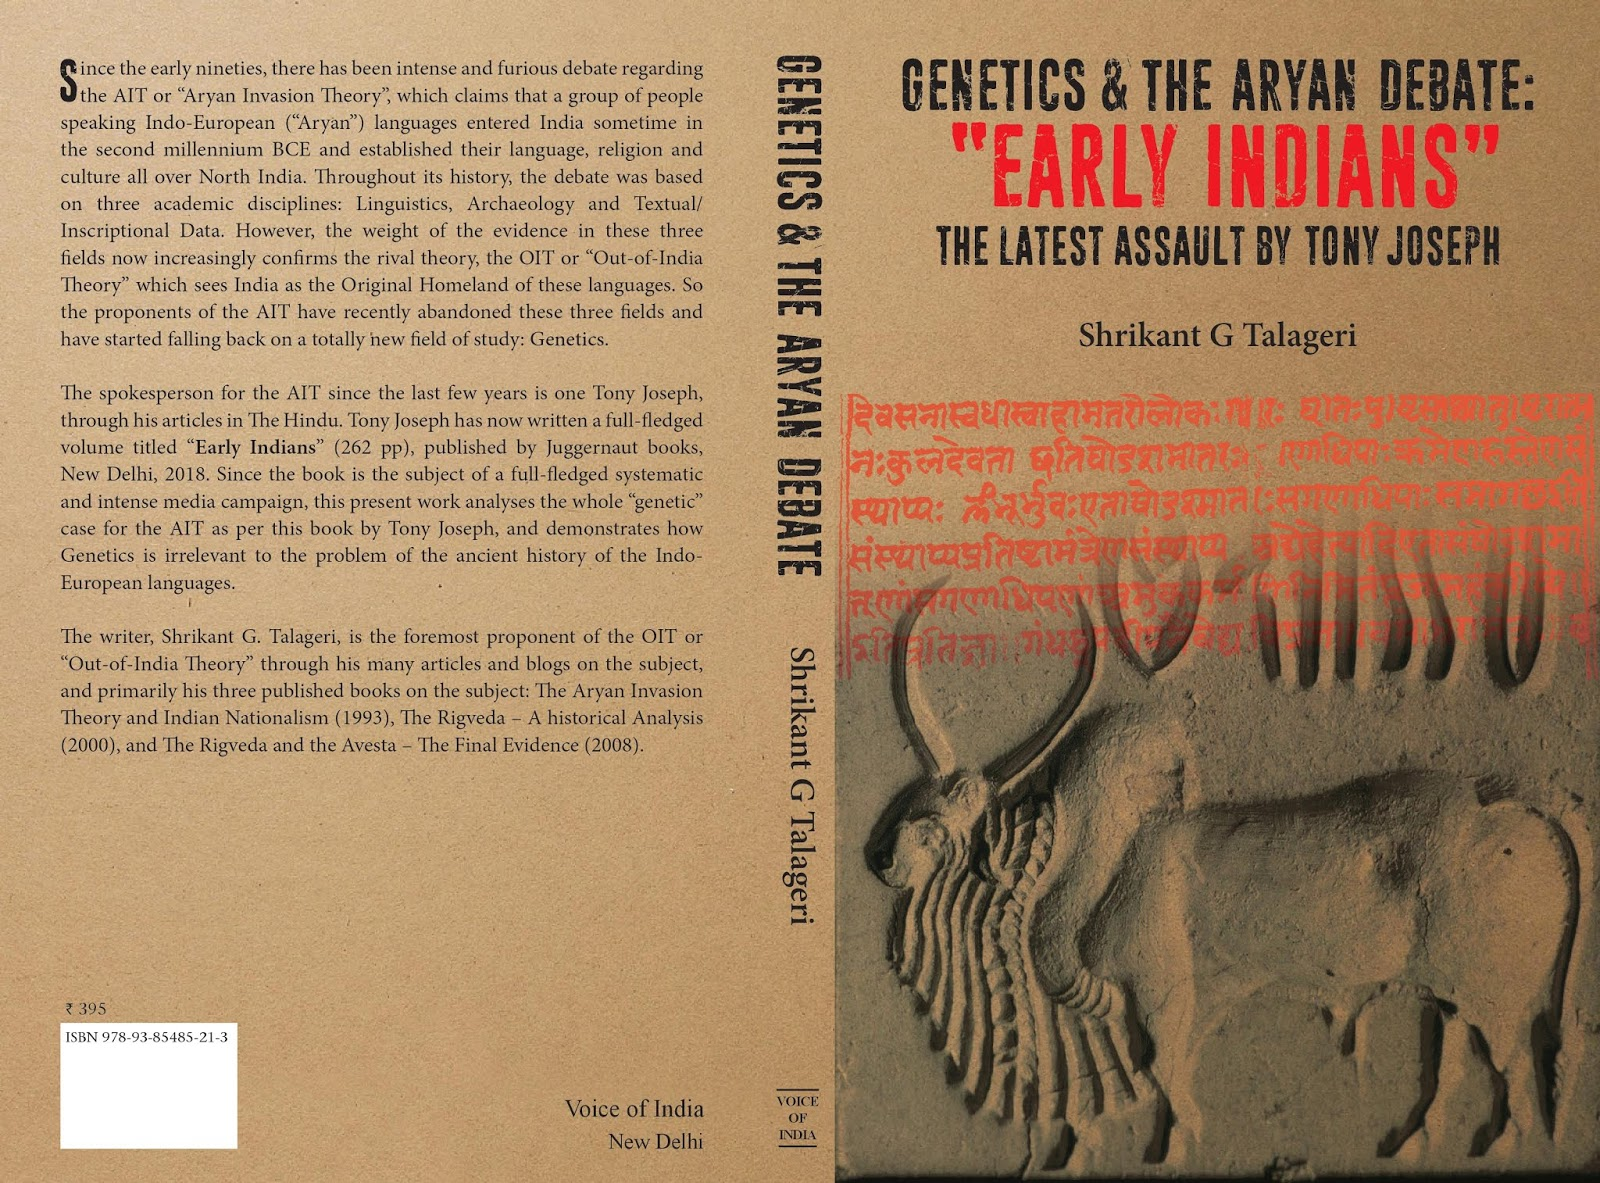 Interview with Sri. Shrikant Talageri on His New Book 'Genetics & The Aryan Debate'